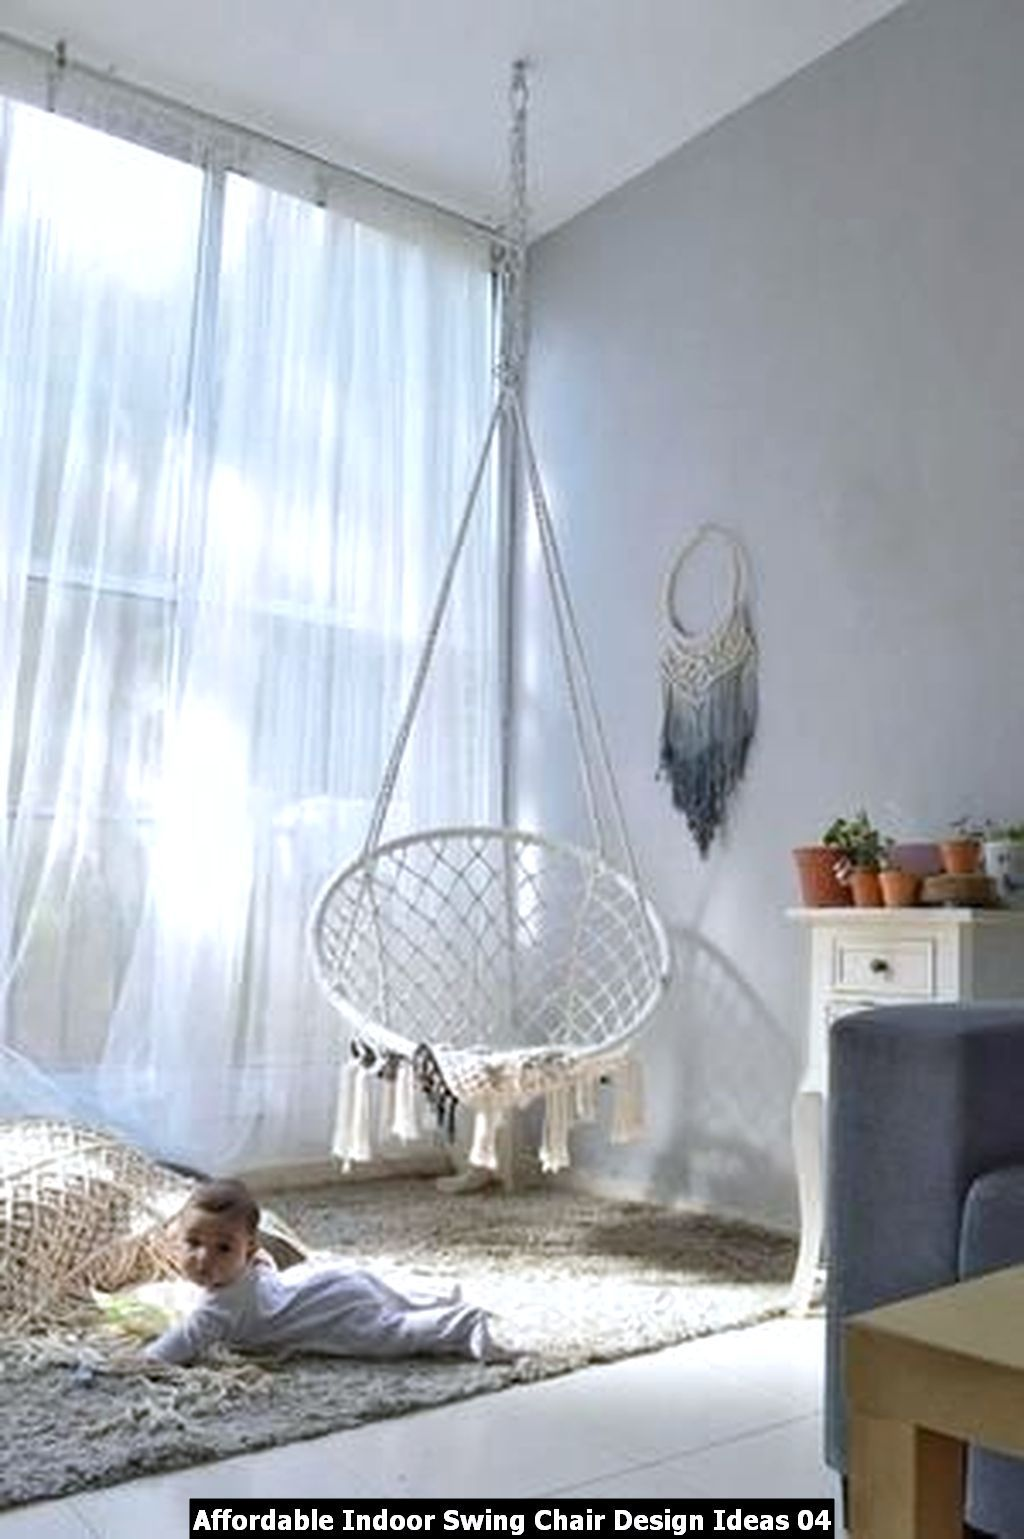 Affordable indoor swing chair design ideas homyhomee in